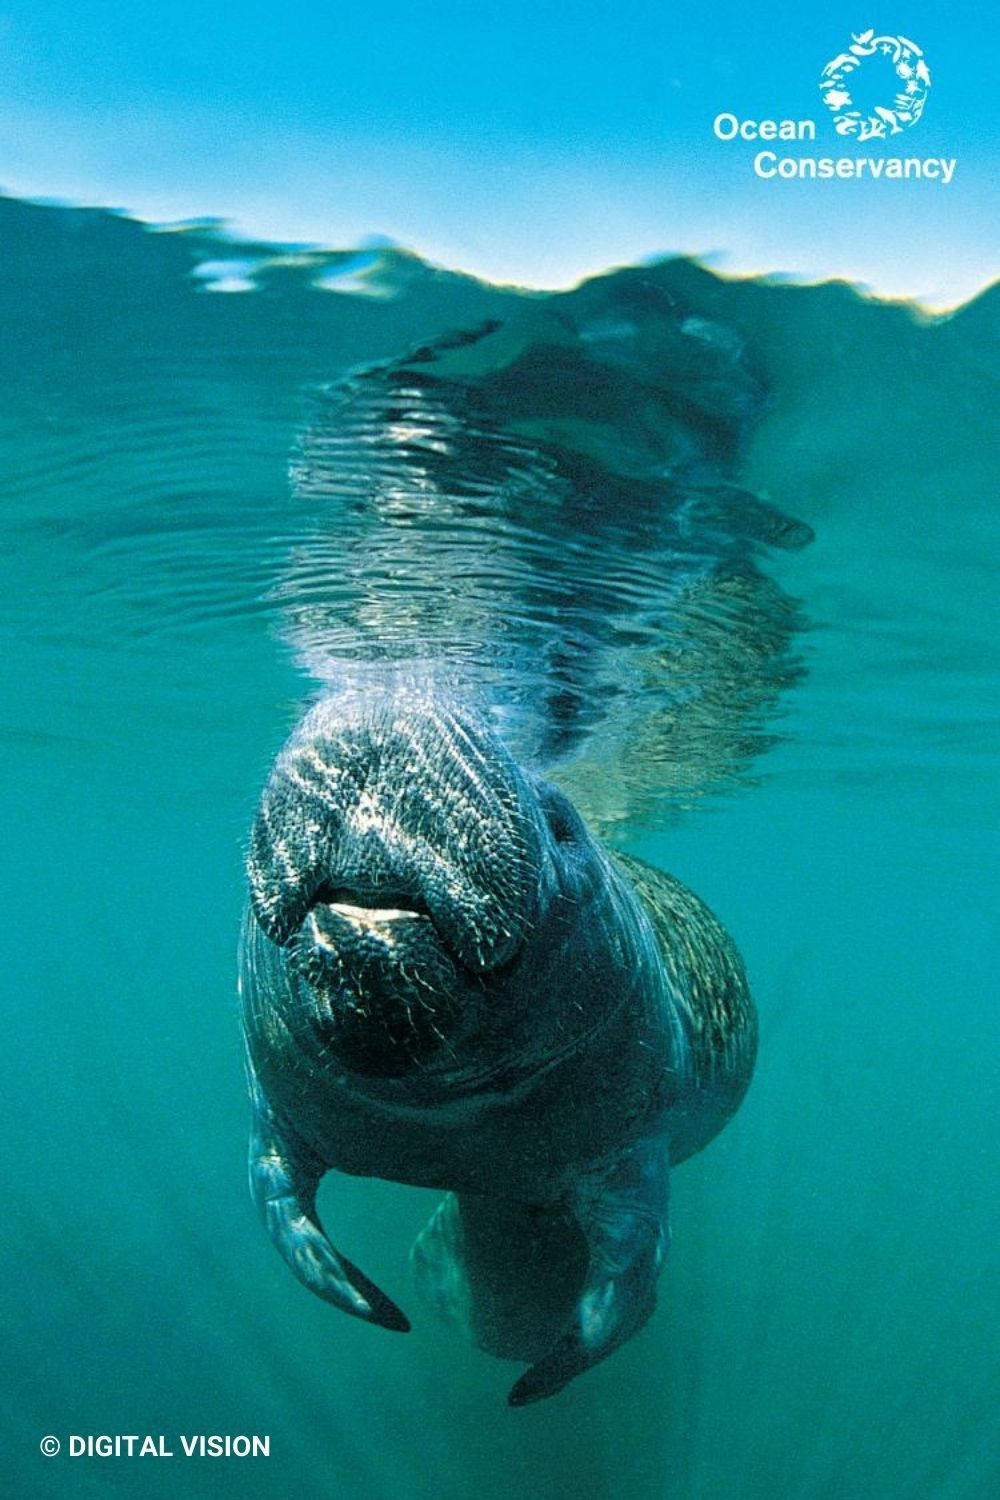 Free Manatee Wallpaper Ocean Inspiration Calming Backgrounds In This Moment